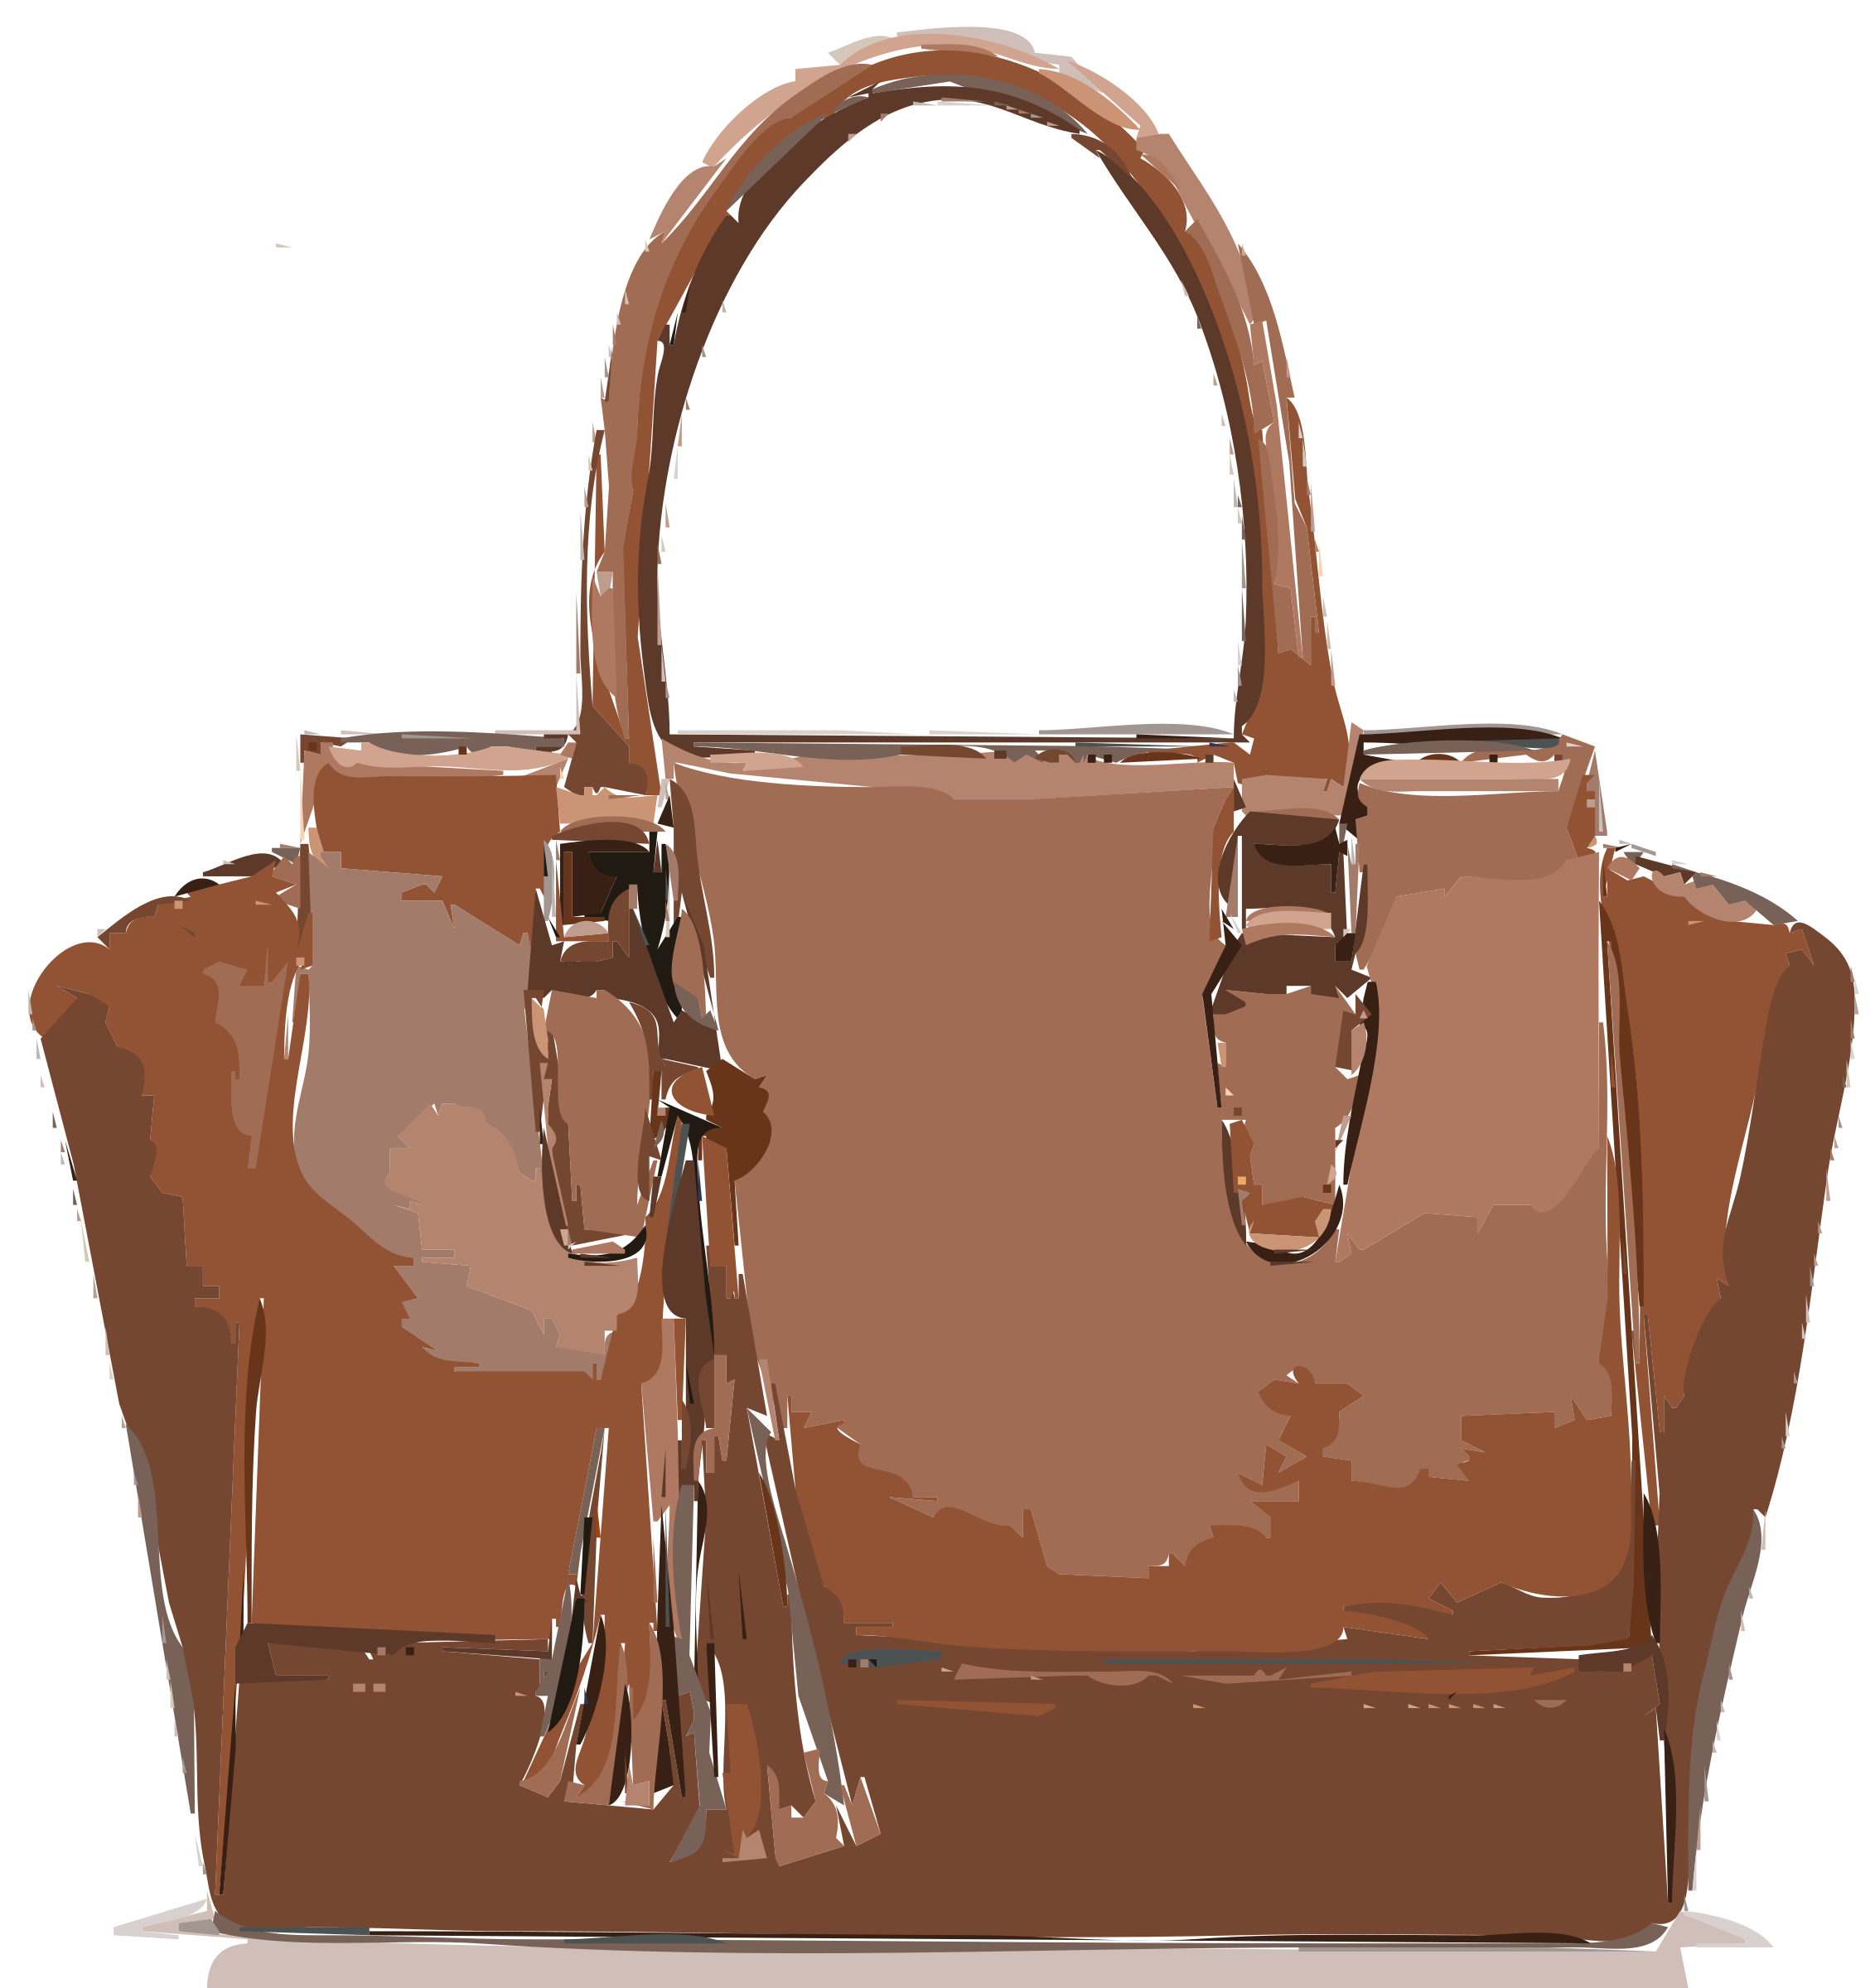 Brown Leather Bag NO LOGO by rejon